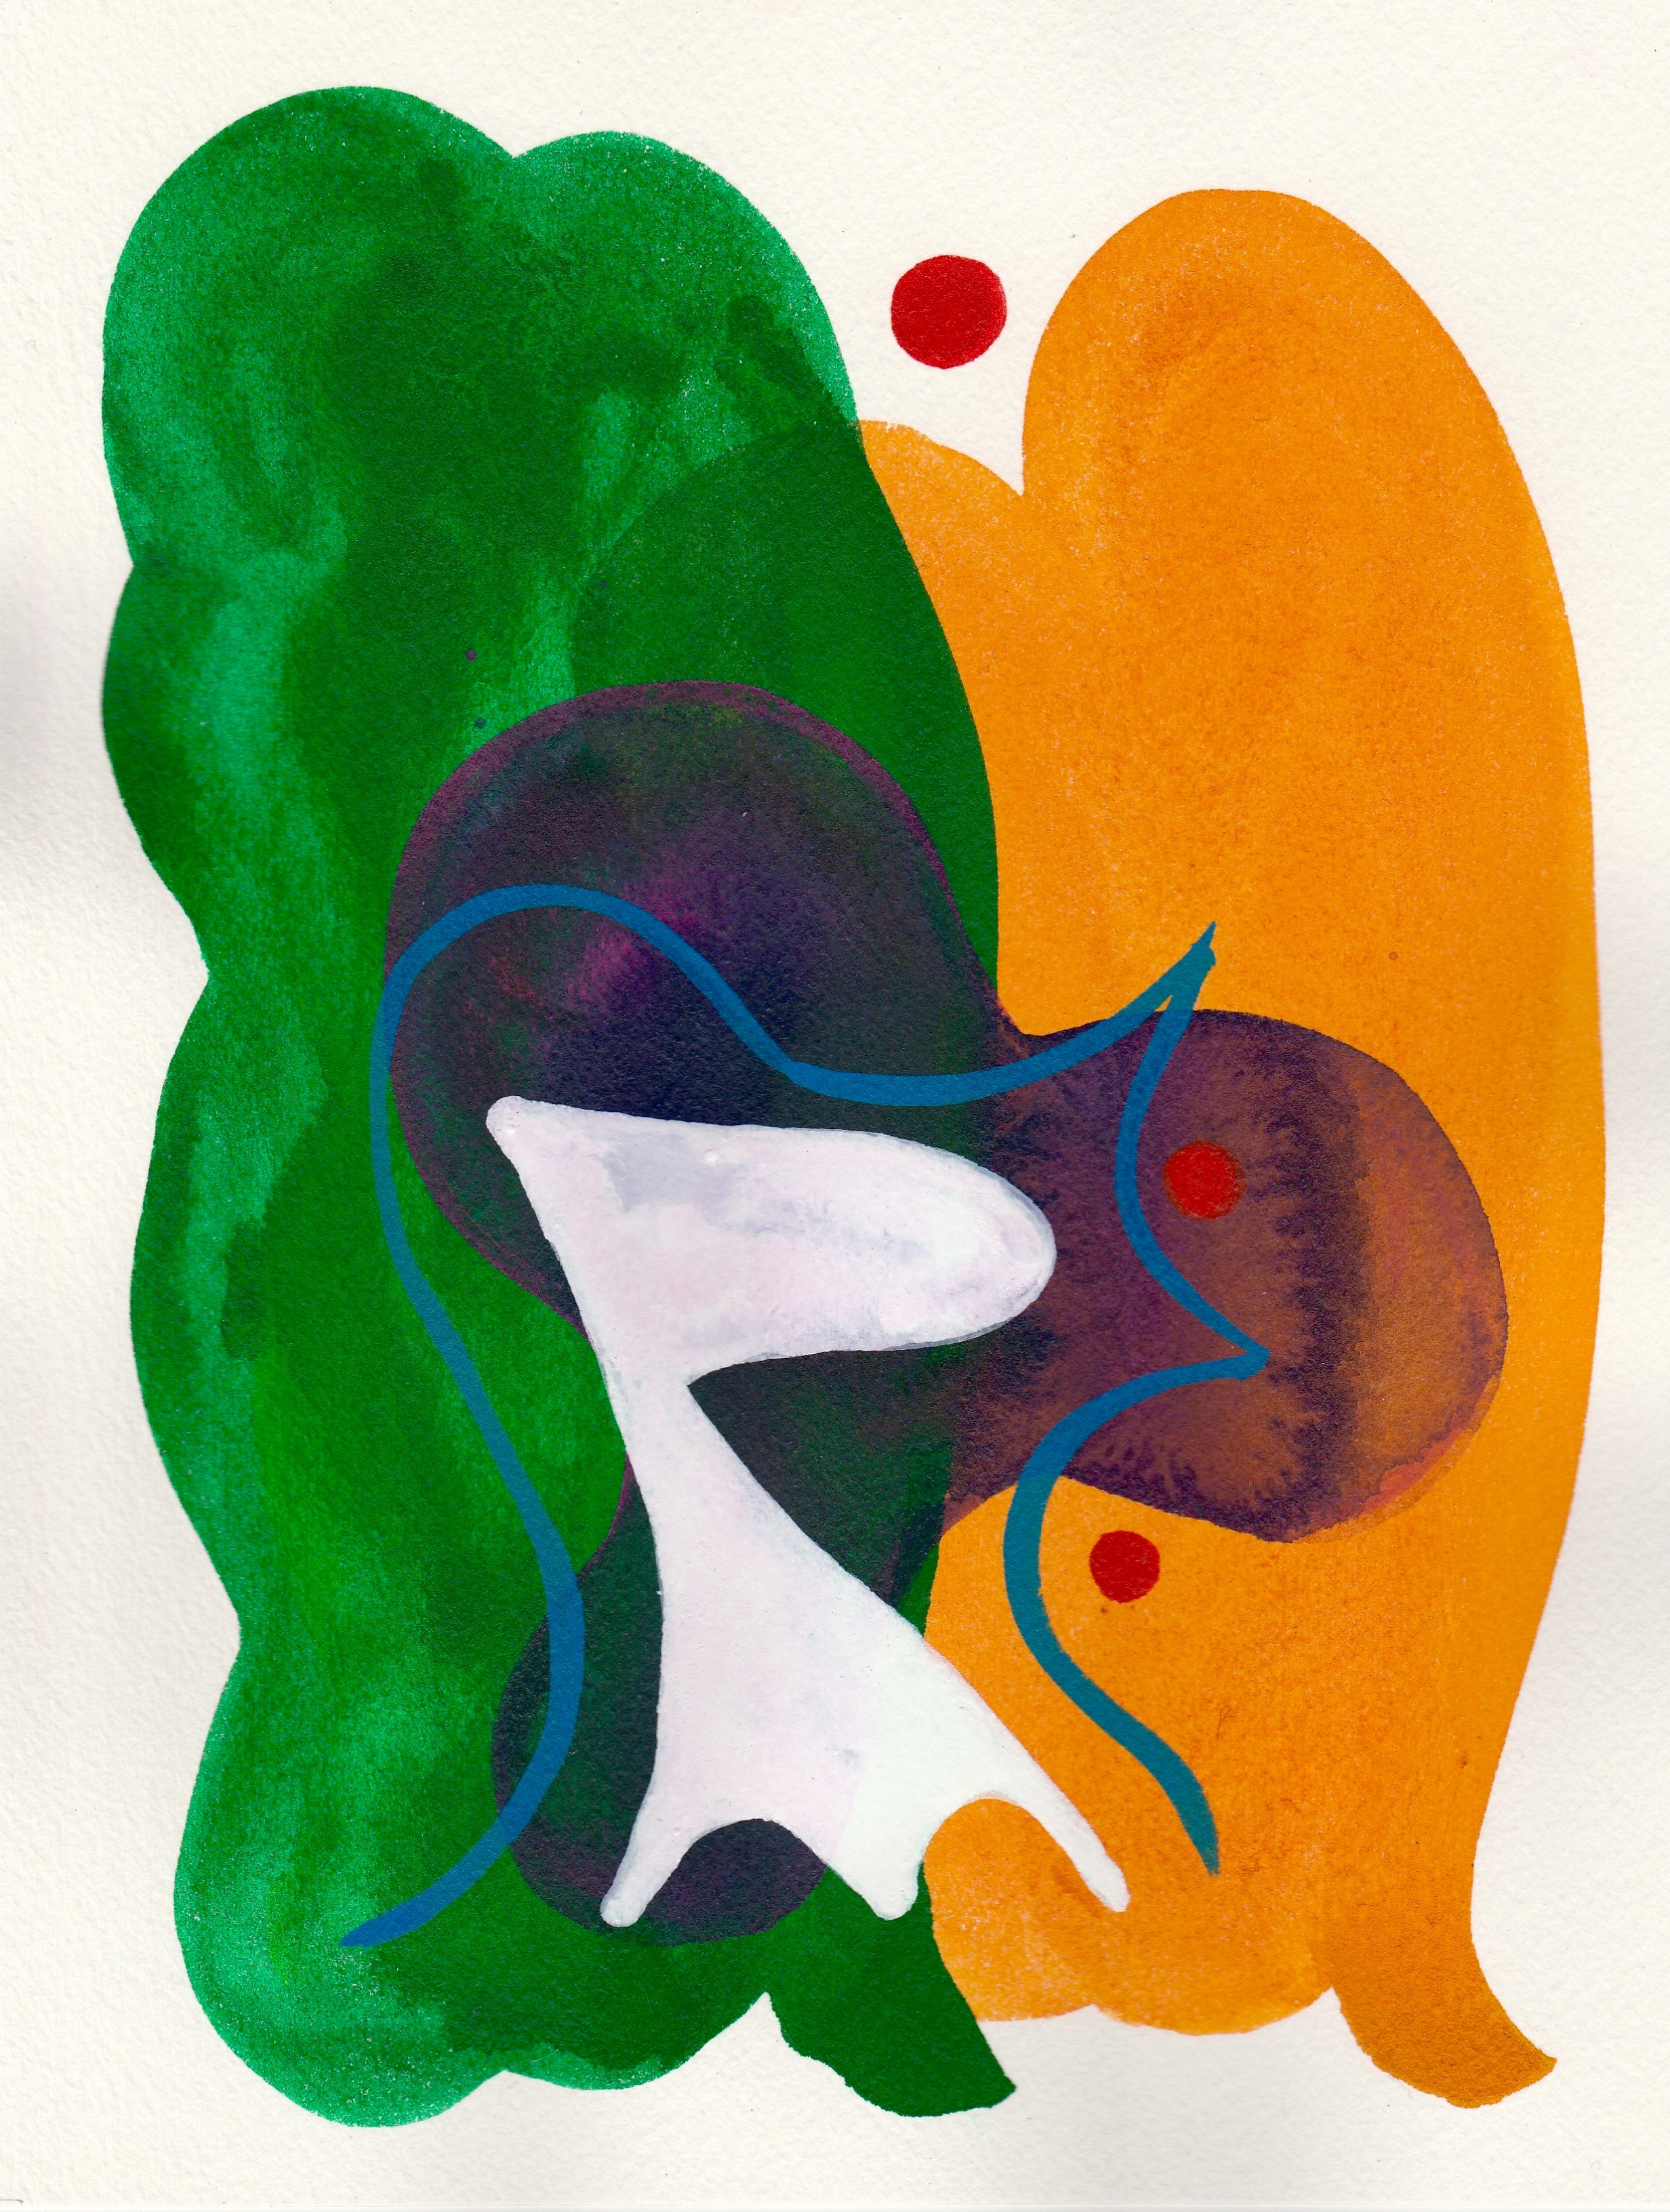 Shape-Up #10   2017  Watercolor, Guache  8.5 x 11 inches